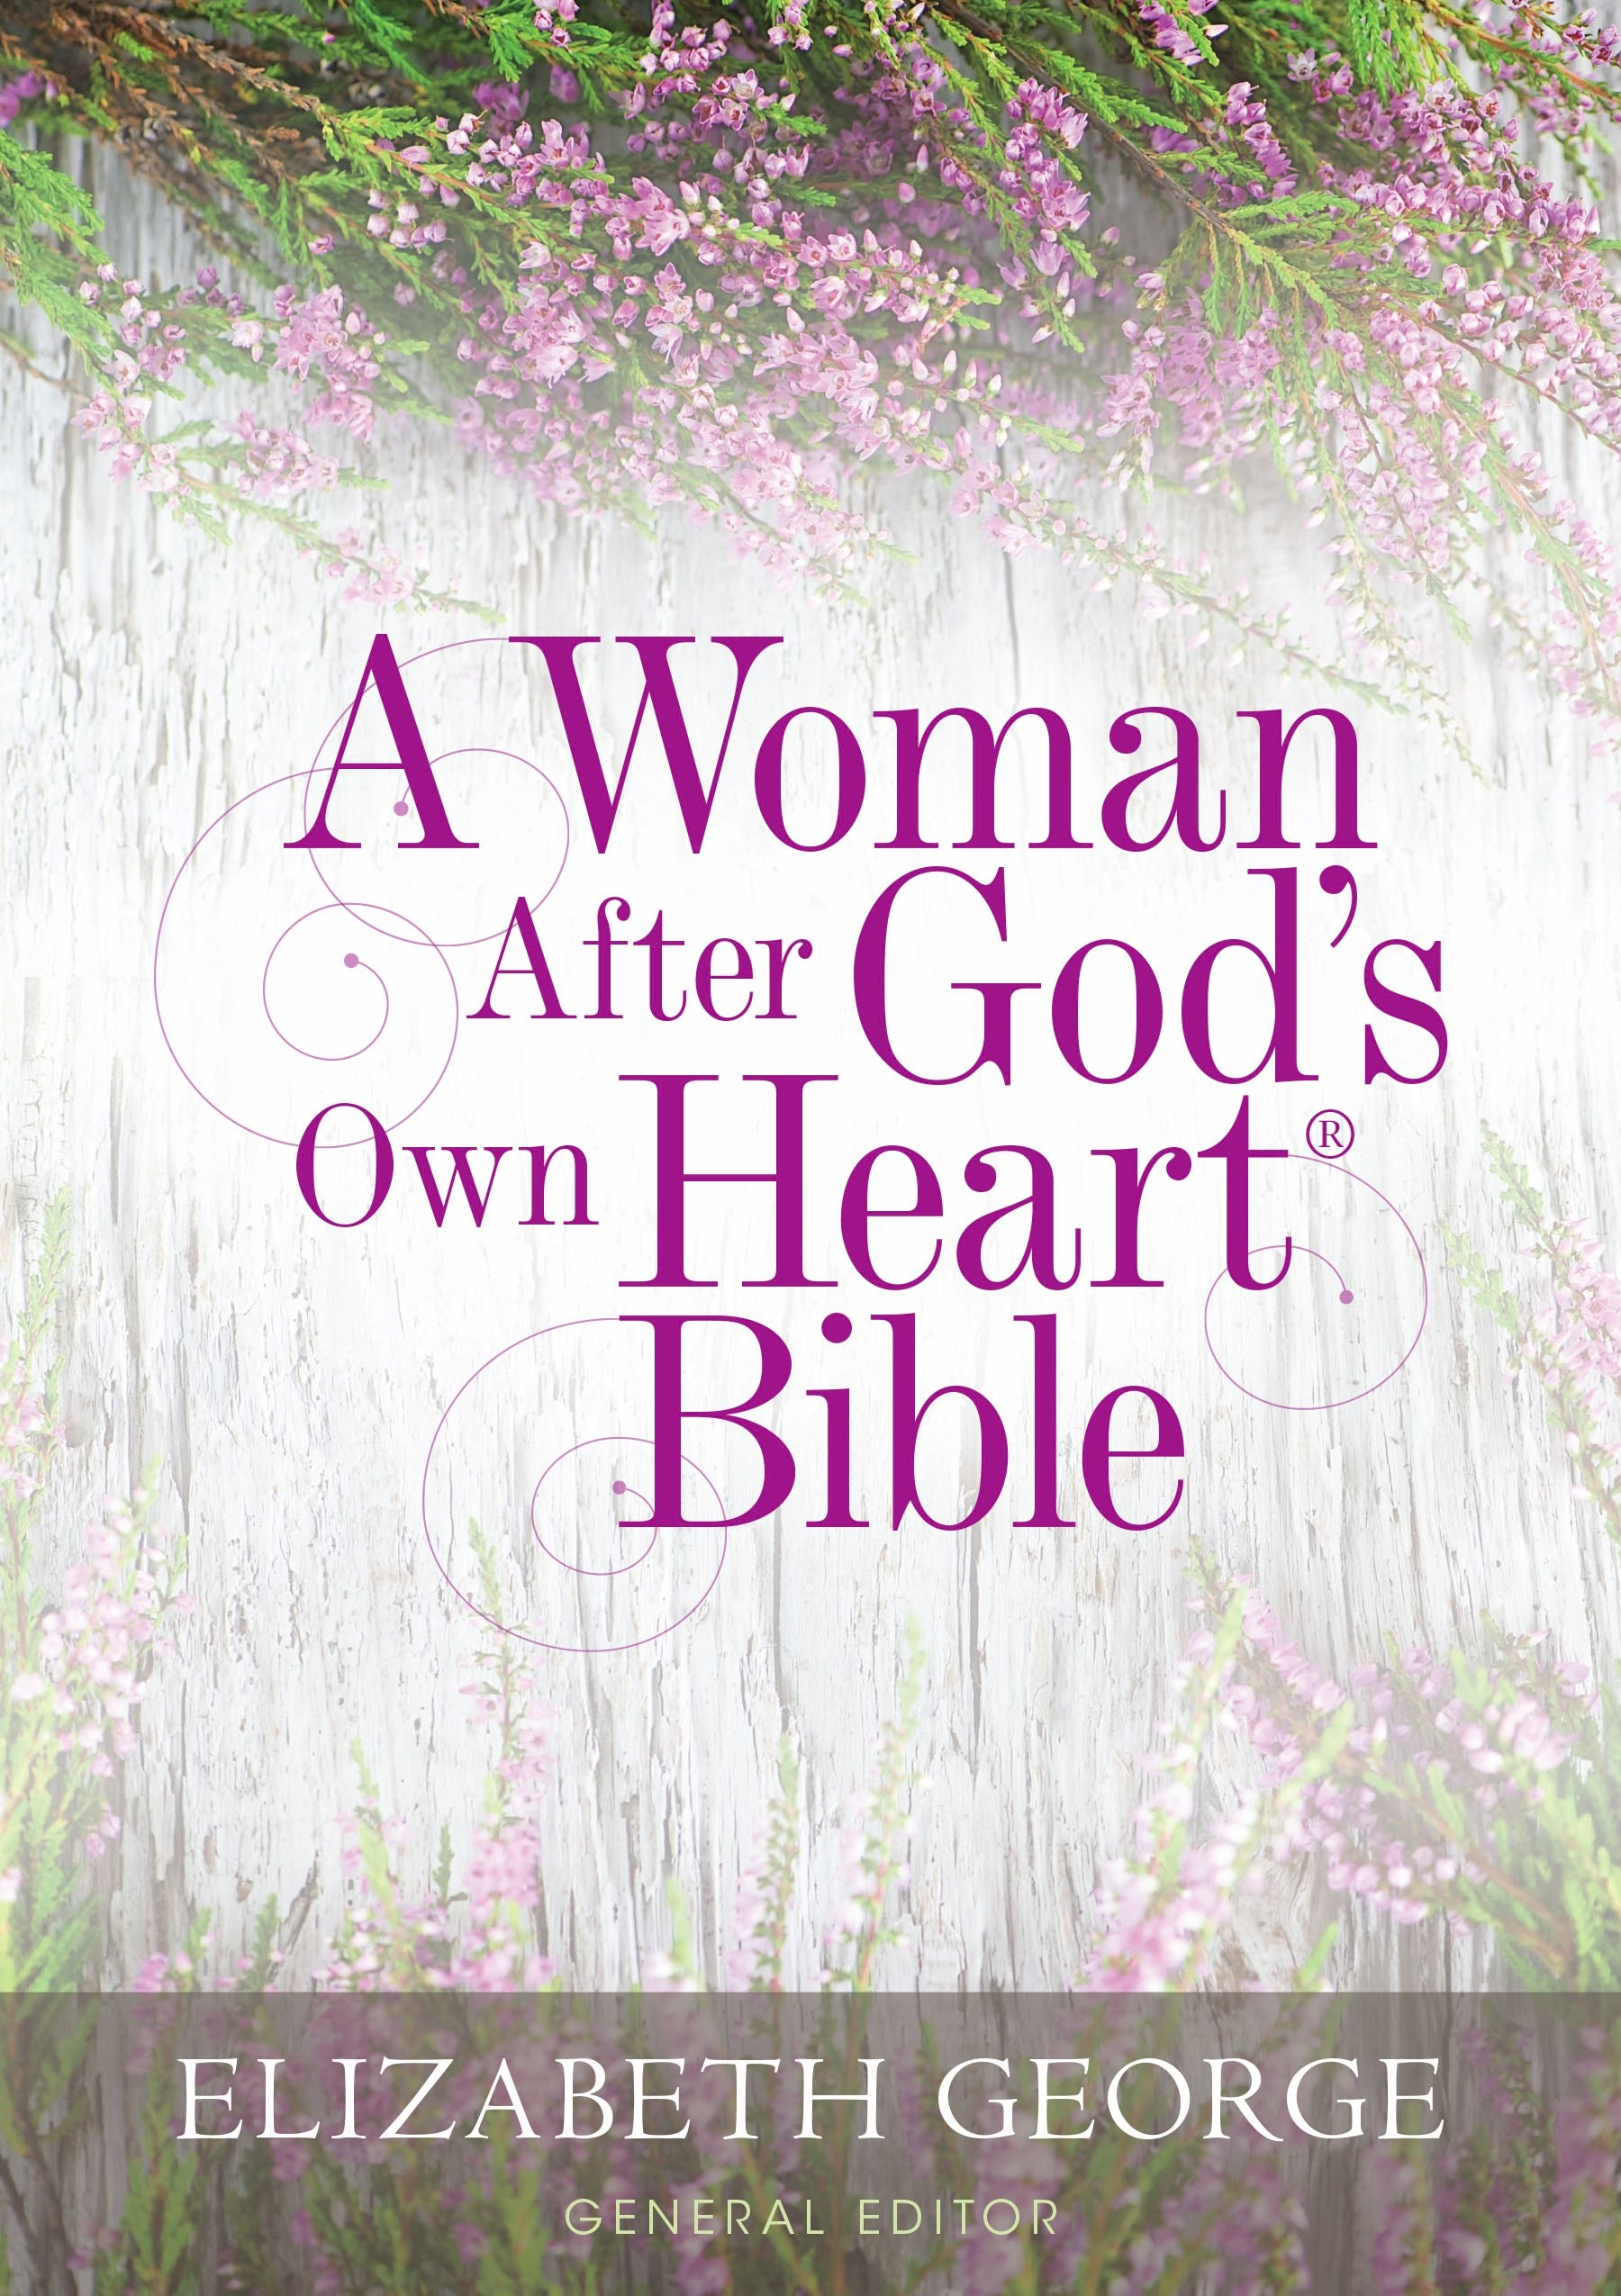 NKJV A Woman After God's Own Heart Bible-Hardcover